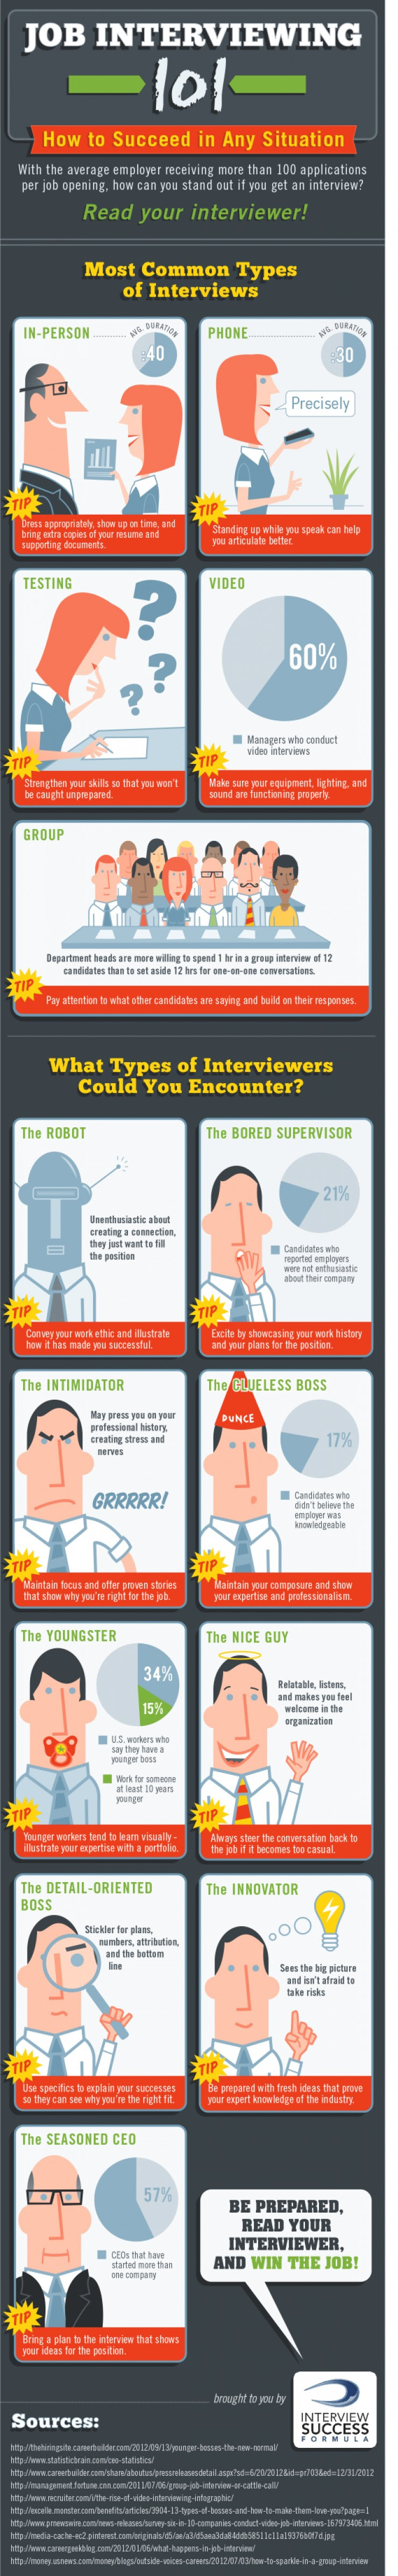 How to Succeed in Any Type of Job Interview - #Infographic